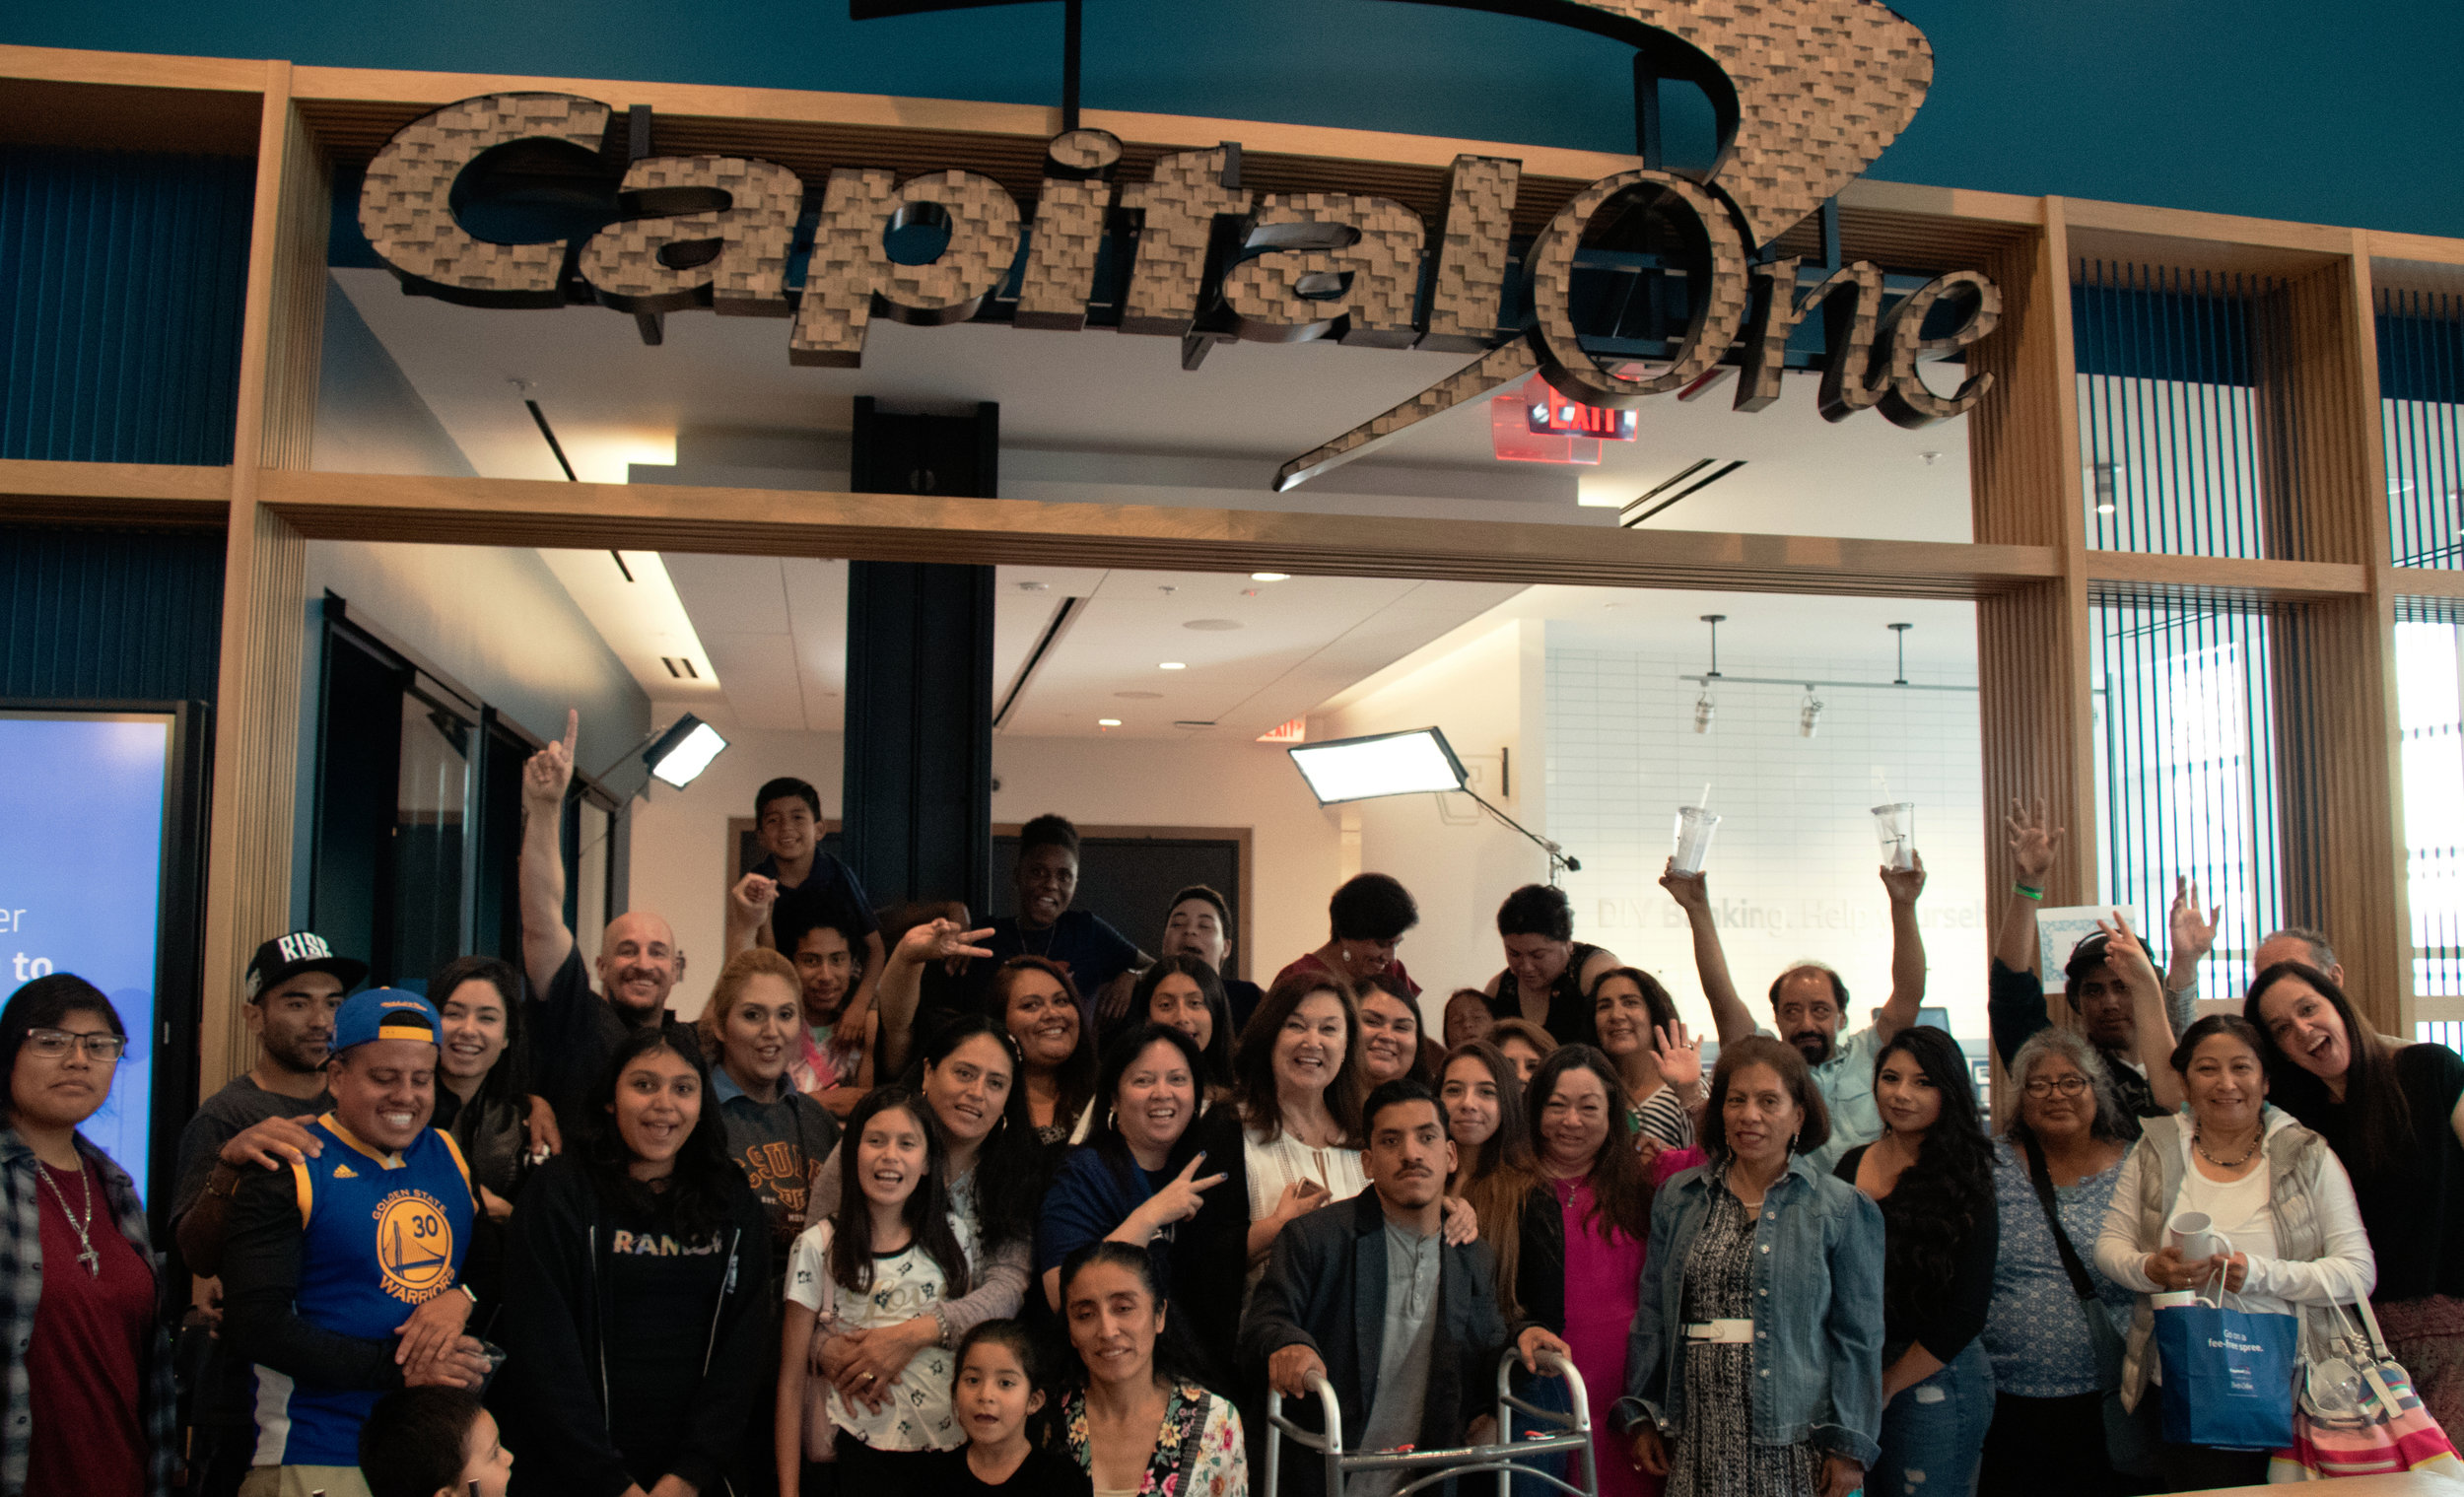 Mother's day at Capital One Cafe May 11, 2019-GREAT GROUP PHOTO.jpg